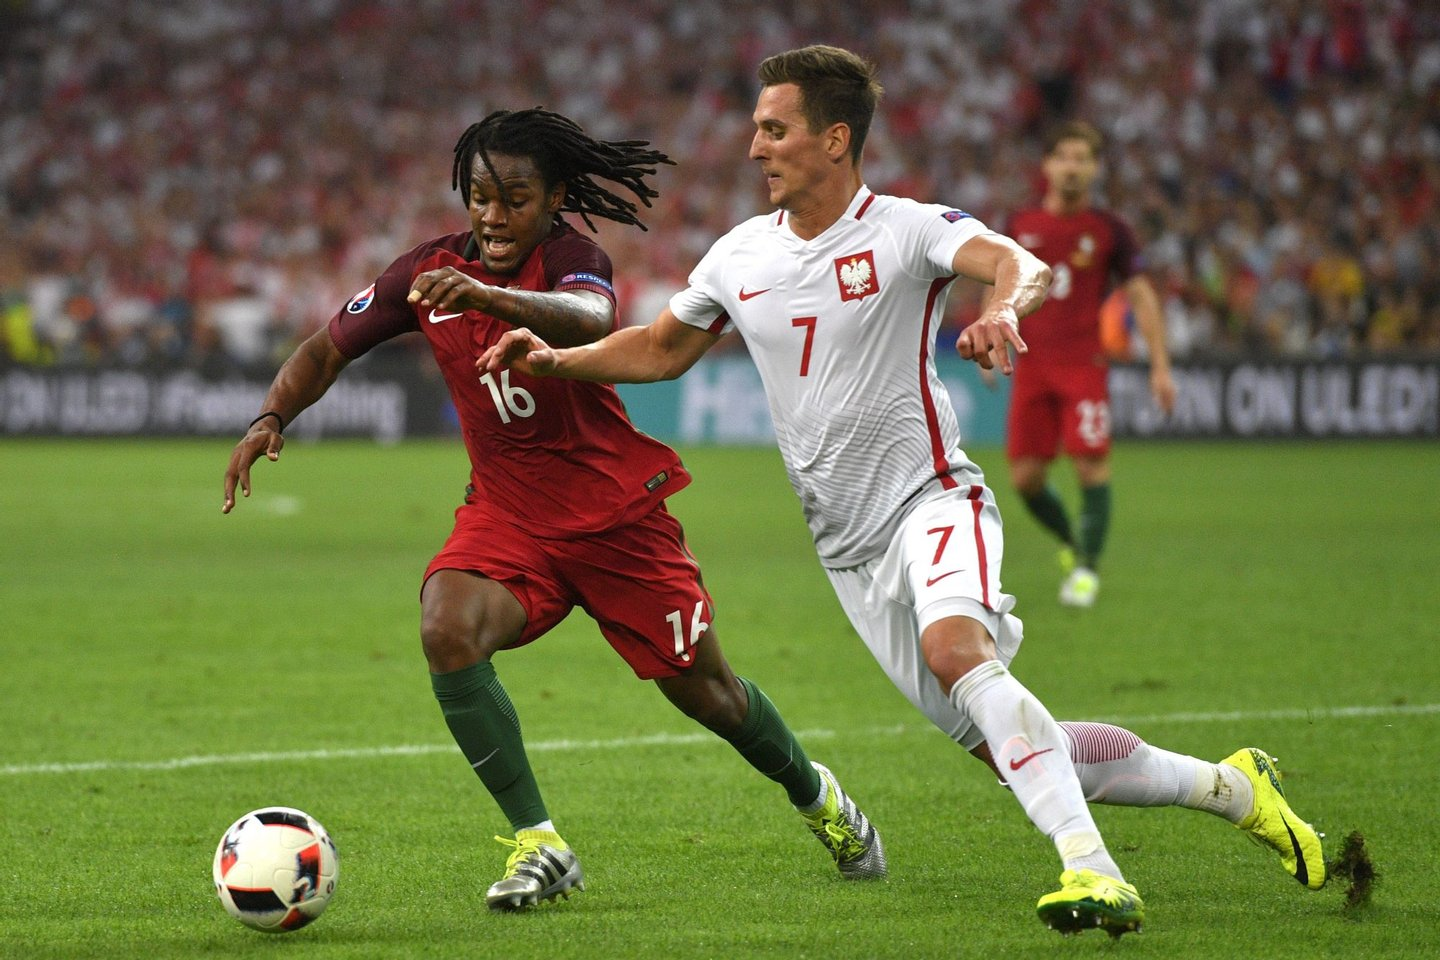 Portugal's midfielder Renato Sanches (L) vies with Poland's forward Arkadiusz Milik during the Euro 2016 quarter-final football match between Poland and Portugal at the Stade Velodrome in Marseille on June 30, 2016. / AFP / Francisco LEONG (Photo credit should read FRANCISCO LEONG/AFP/Getty Images)